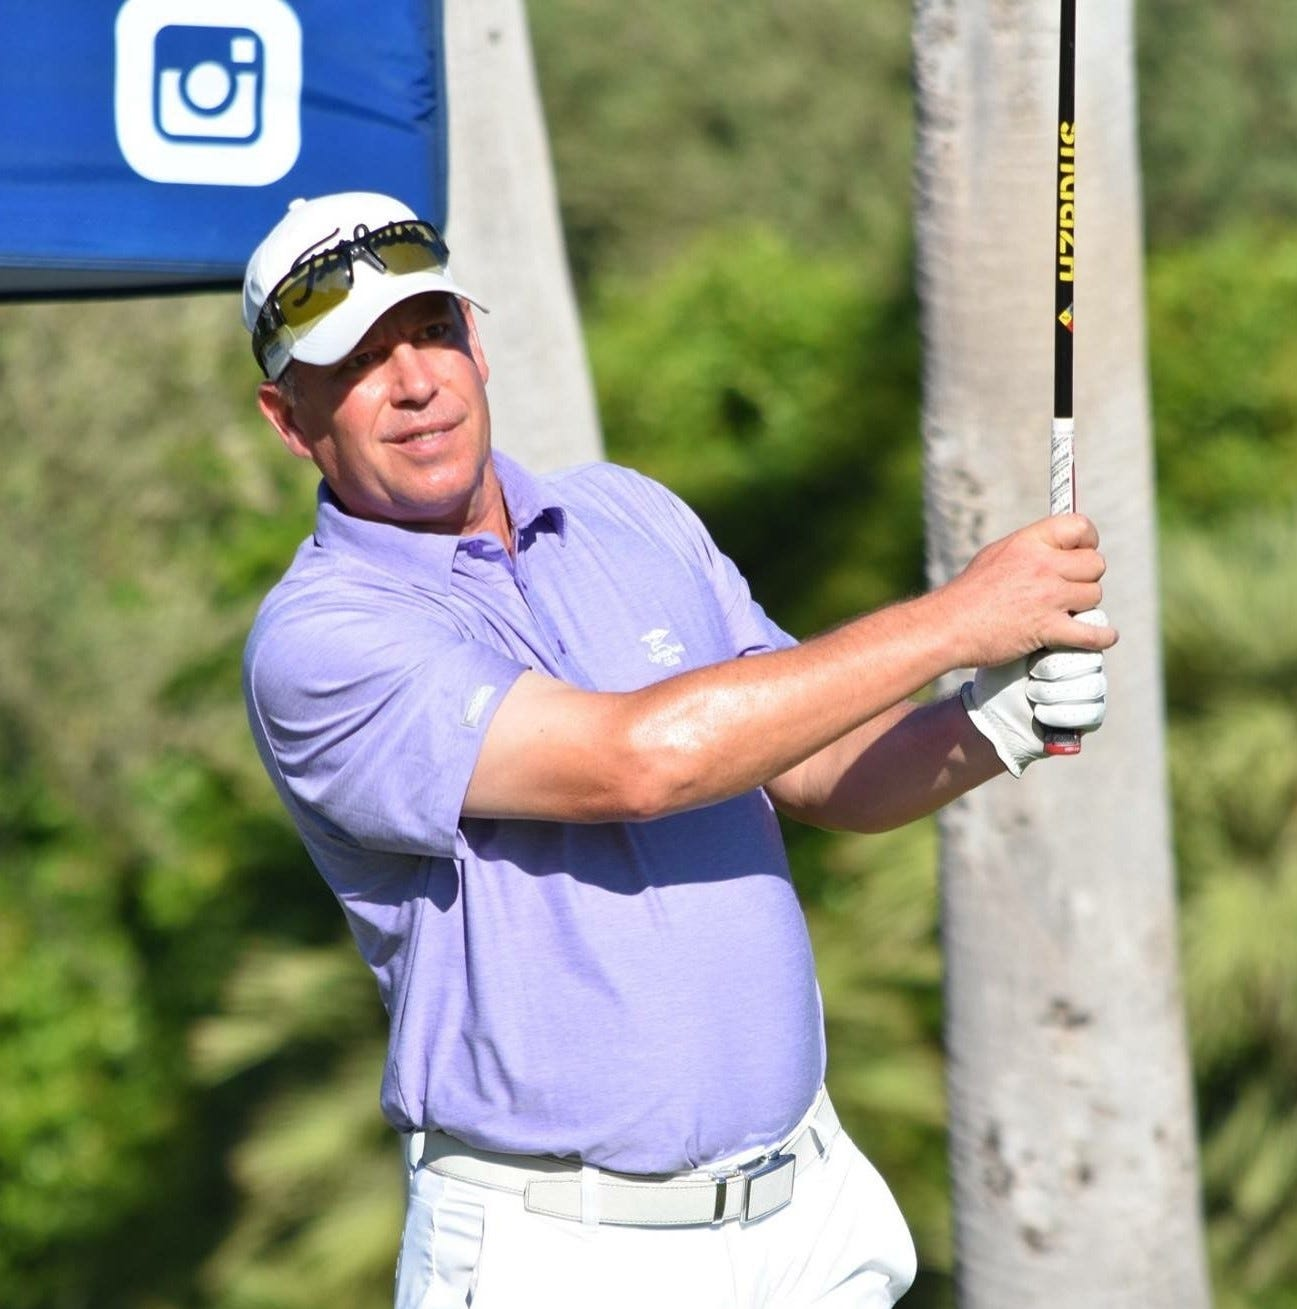 Rick Garboski, who is teaching professional at Golf Development Complex in Moorpark, is one tournament away from reaching the 2019 PGA Championship.